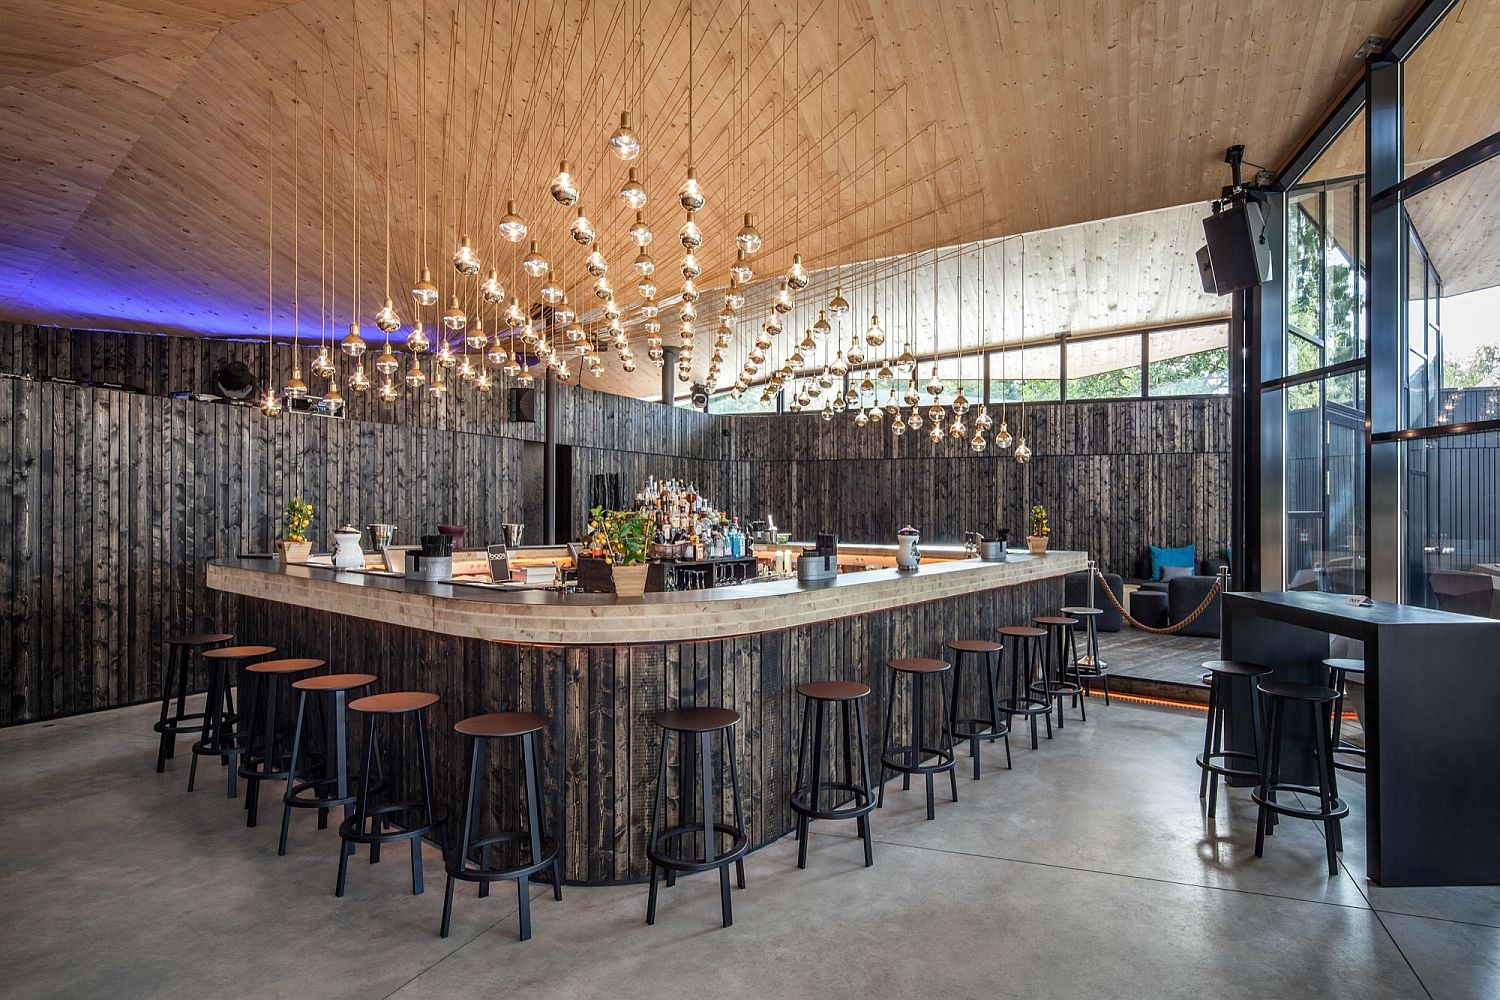 Fabulous-lighting-adds-sparkle-to-the-bar-at-the-Boos-Beach-Club-Restaurant